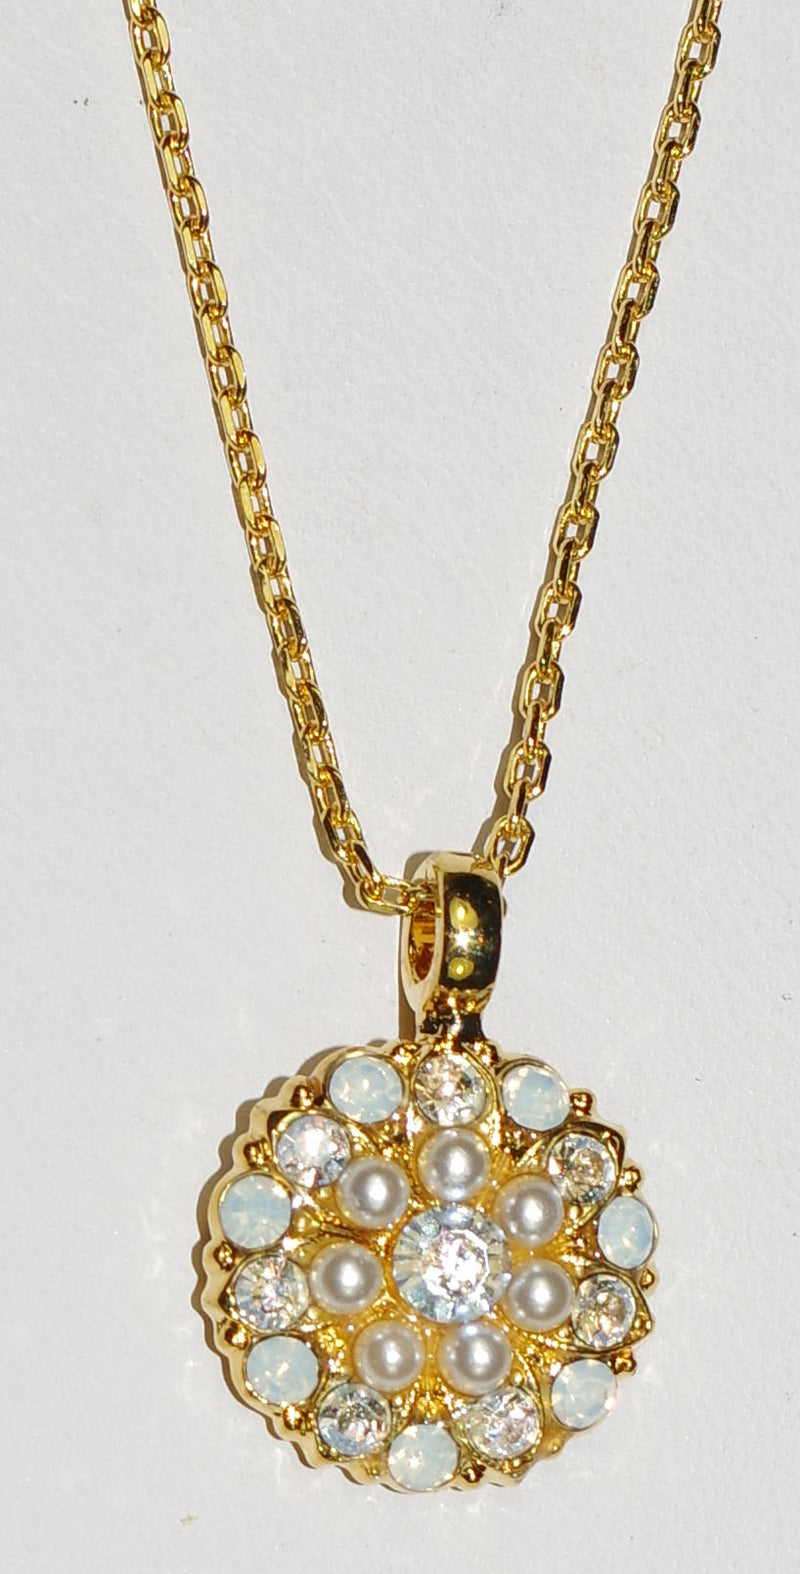 "MARIANA ANGEL PENDANT BERMUDA: clear, pearl, white stones in yellow gold setting, 18"" adjustable chain"